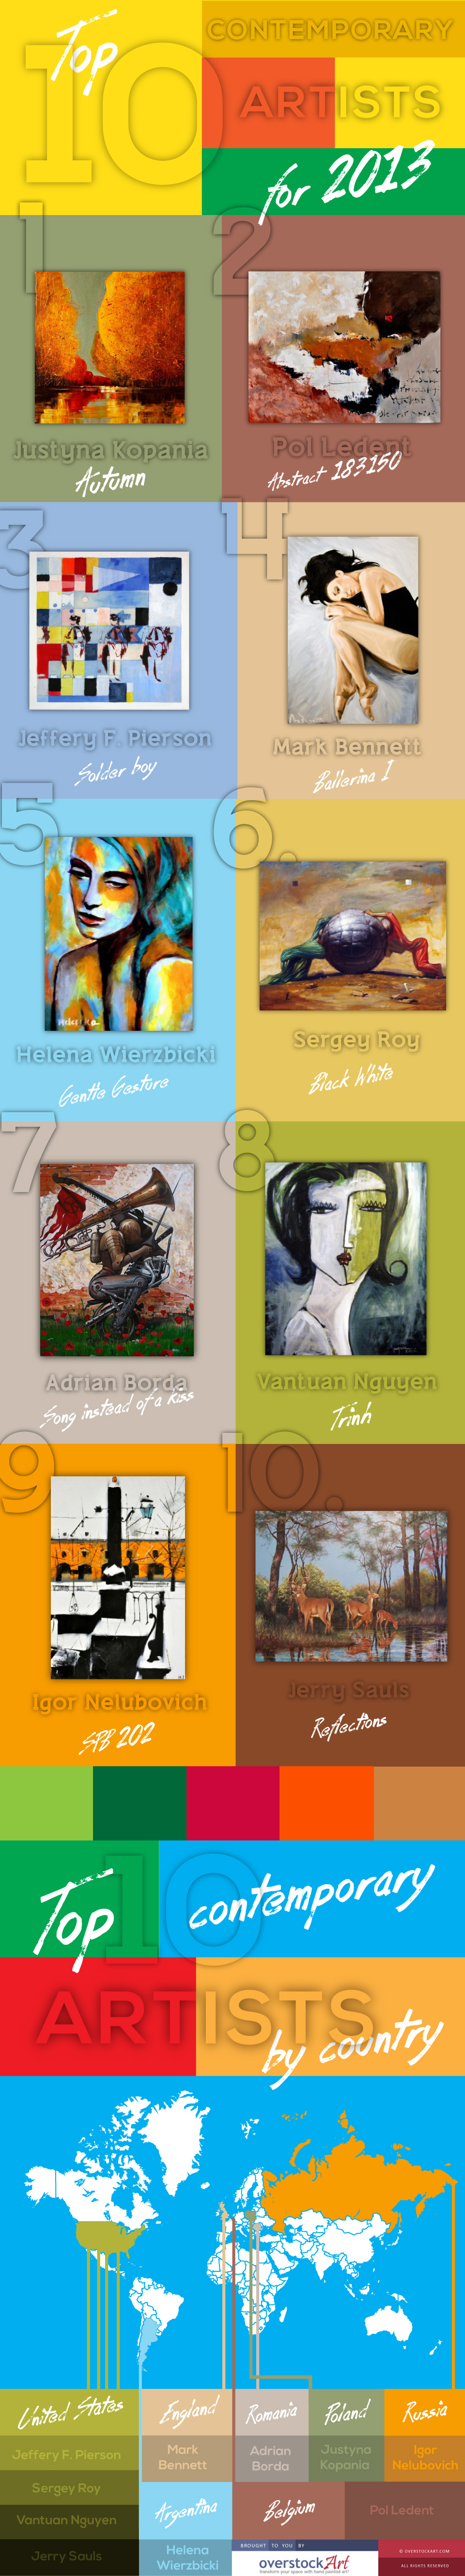 Top 10 Contemporary Artists artist become releases top 10 contemporary artists of 2013